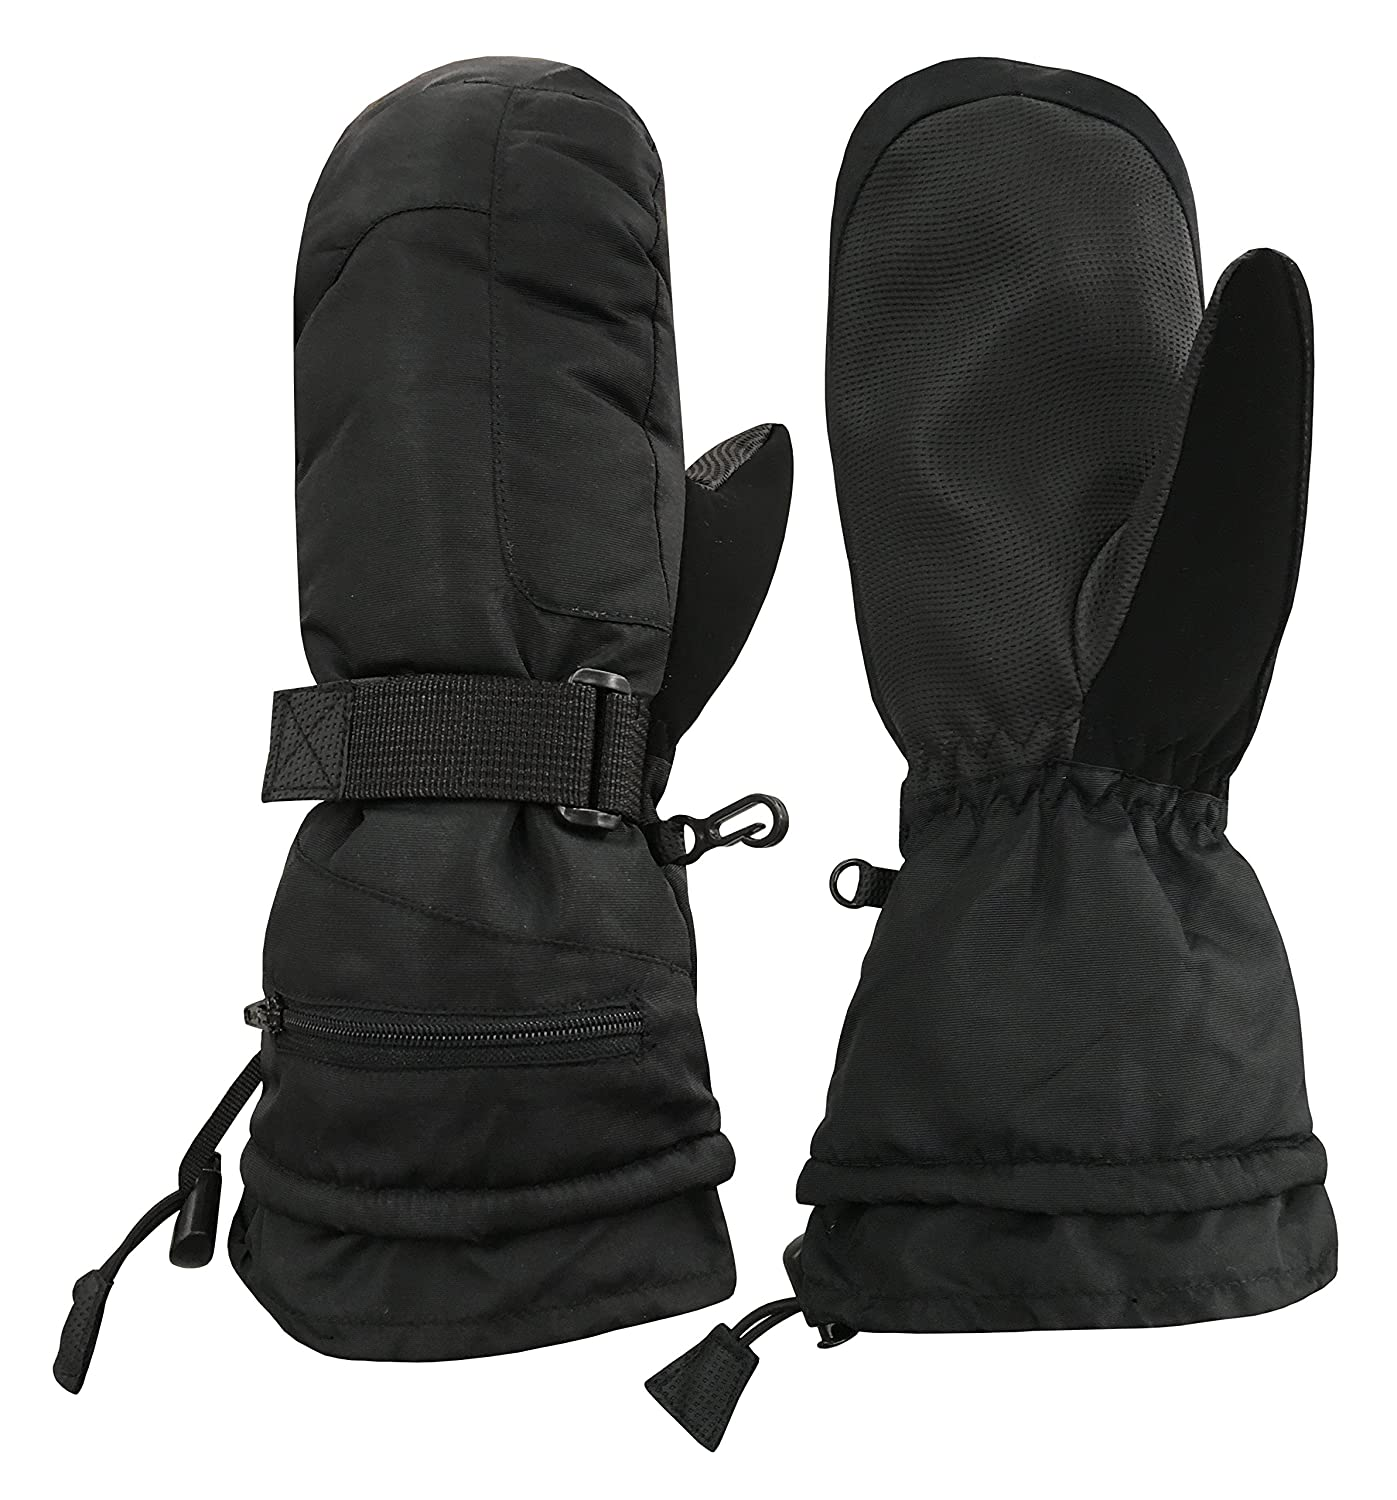 N'Ice Caps Unisex Adult 100 Gram Thinsulate Extreme Cold Weather Waterproof Winter Ski Mitten or Glove